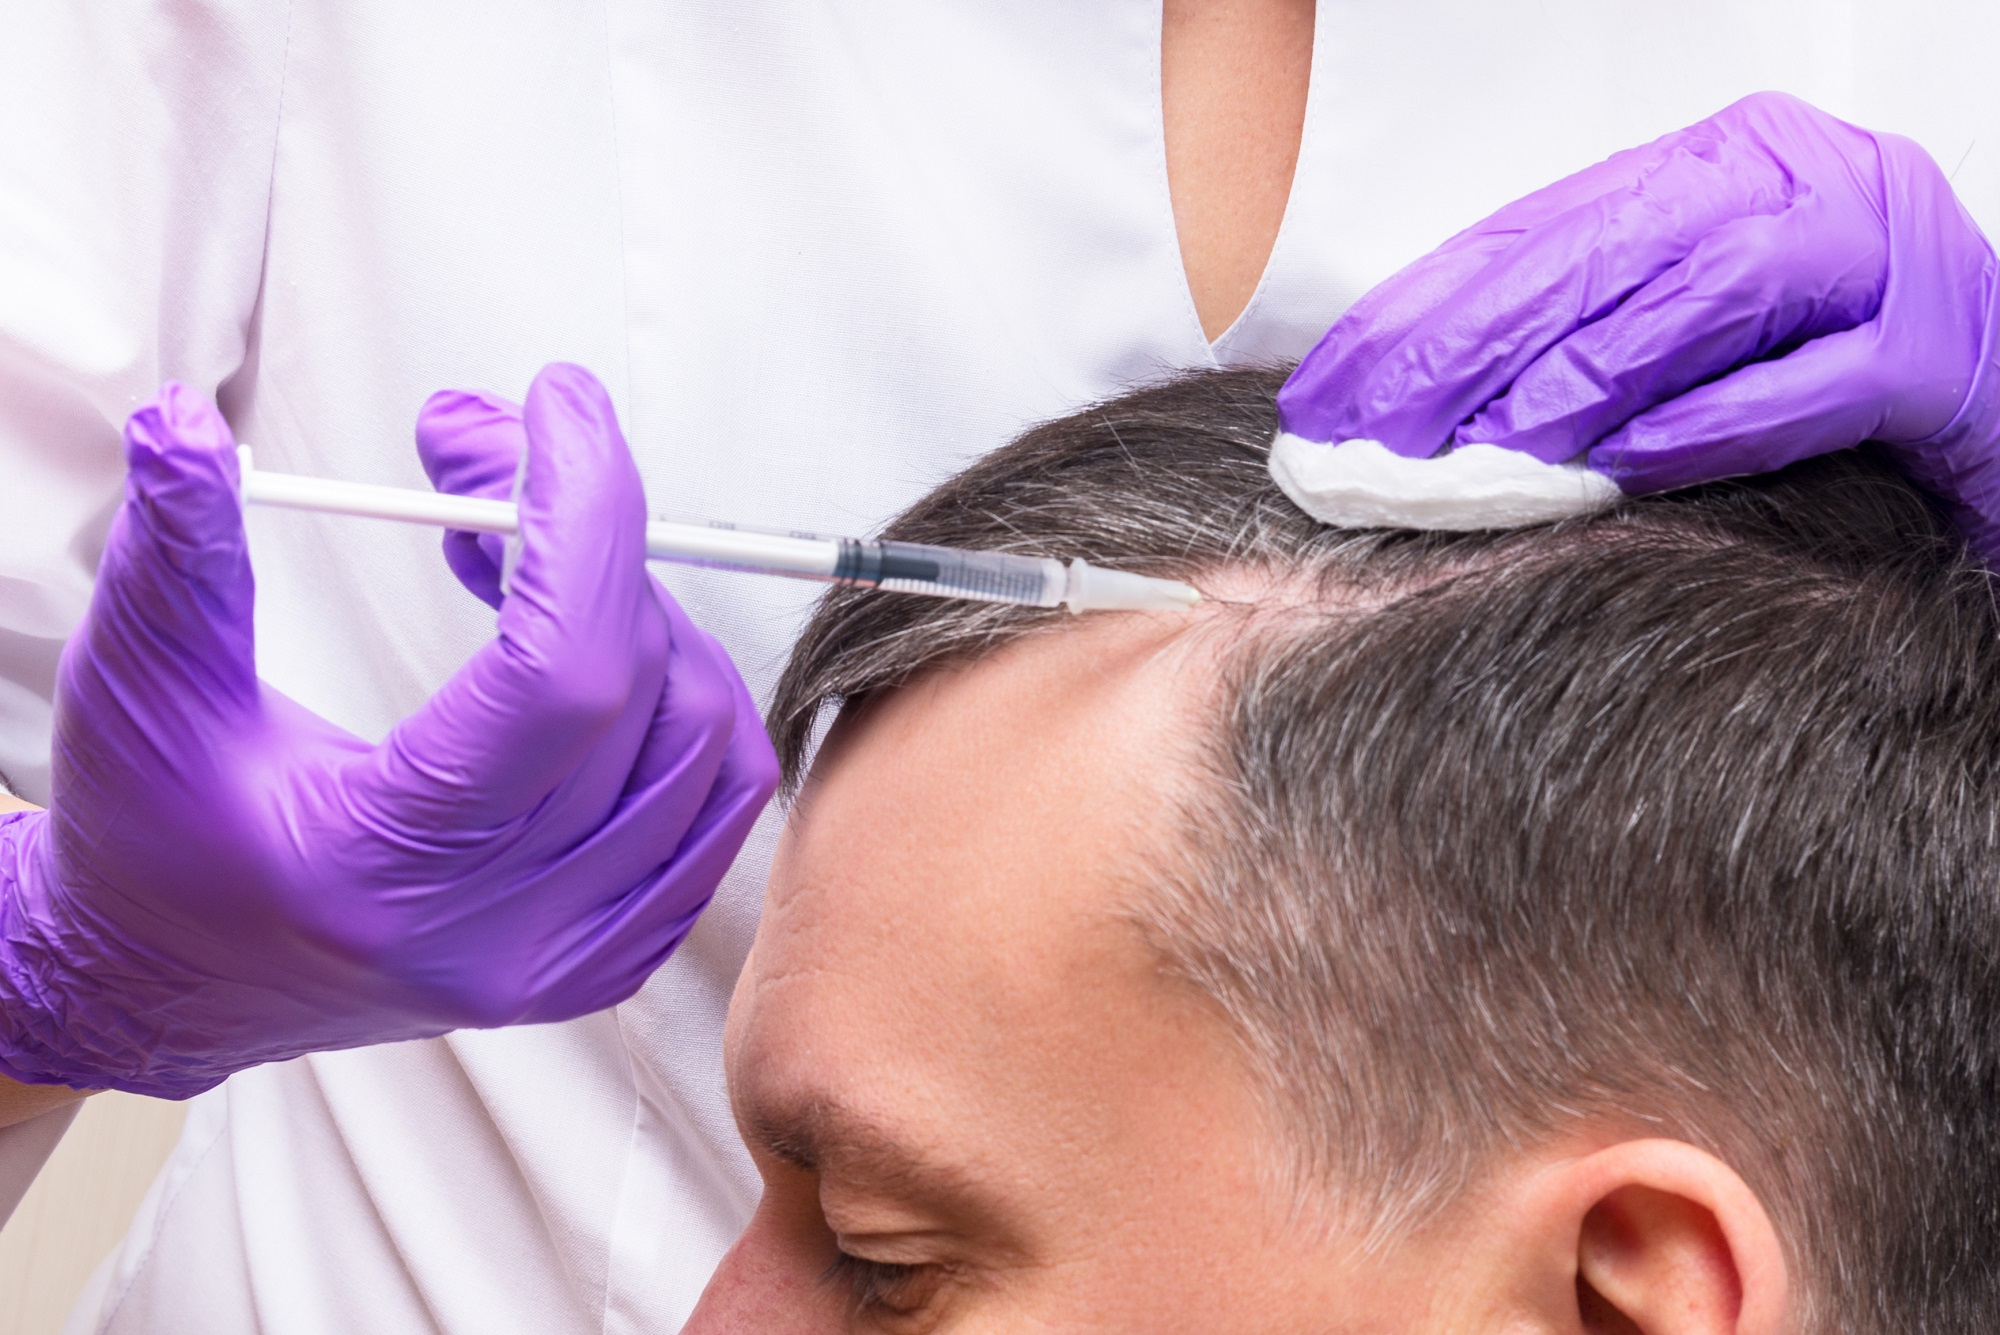 A nurse practitioner injecting PRP for hair loss